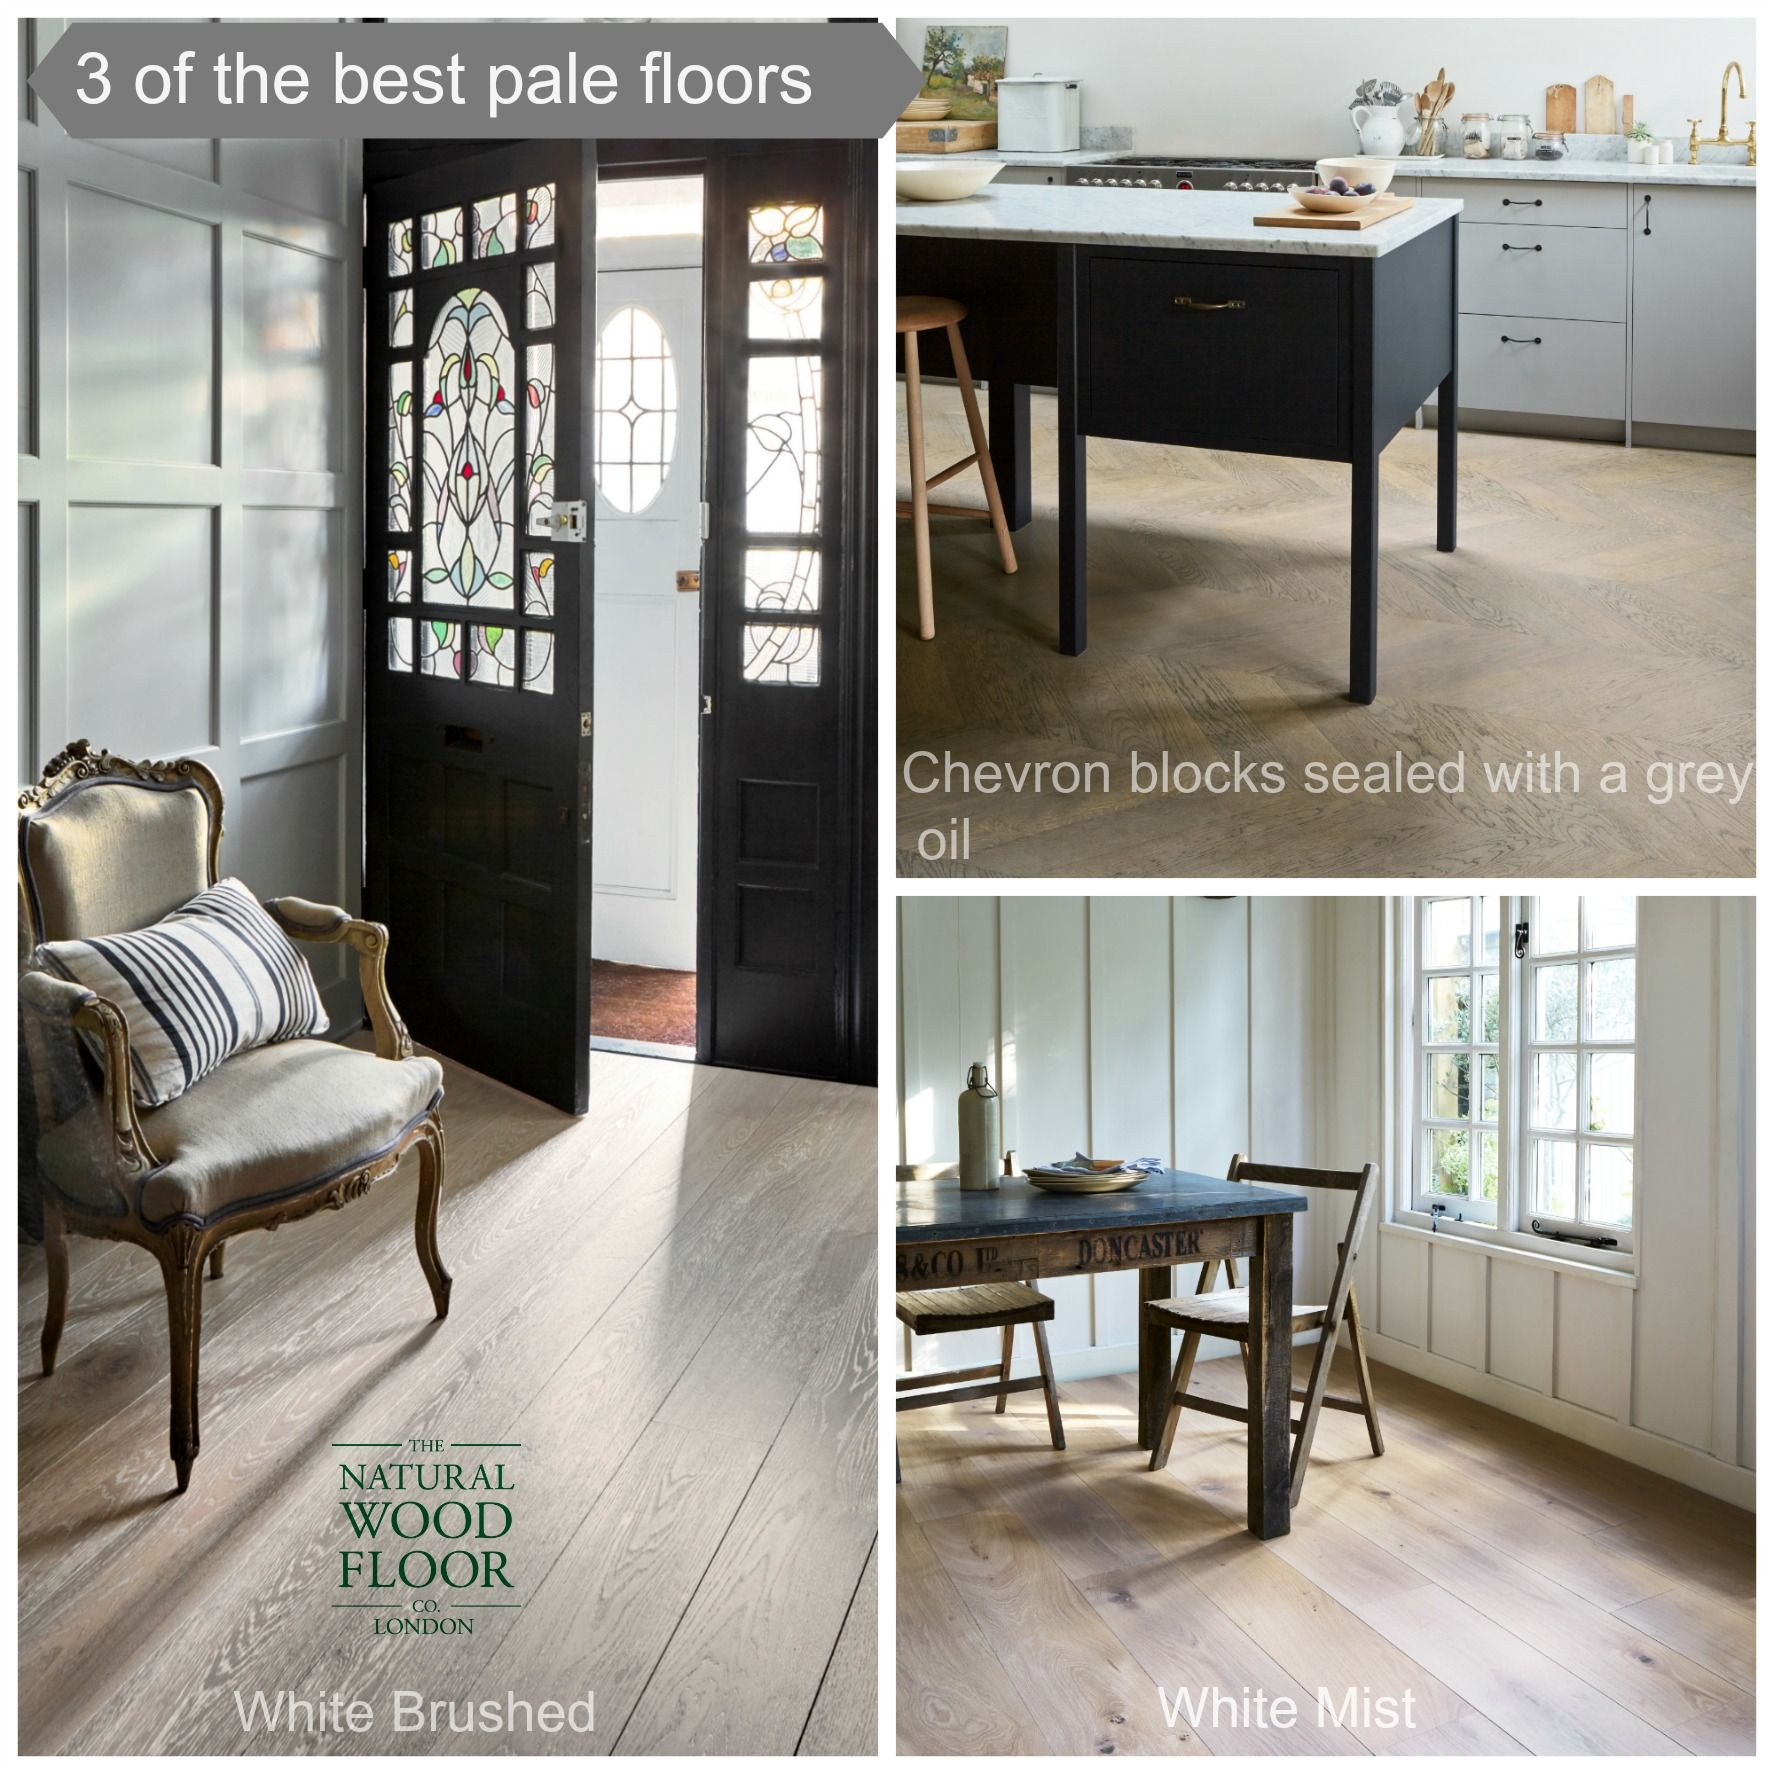 3 of the best... pale wooden floors. Which one is your